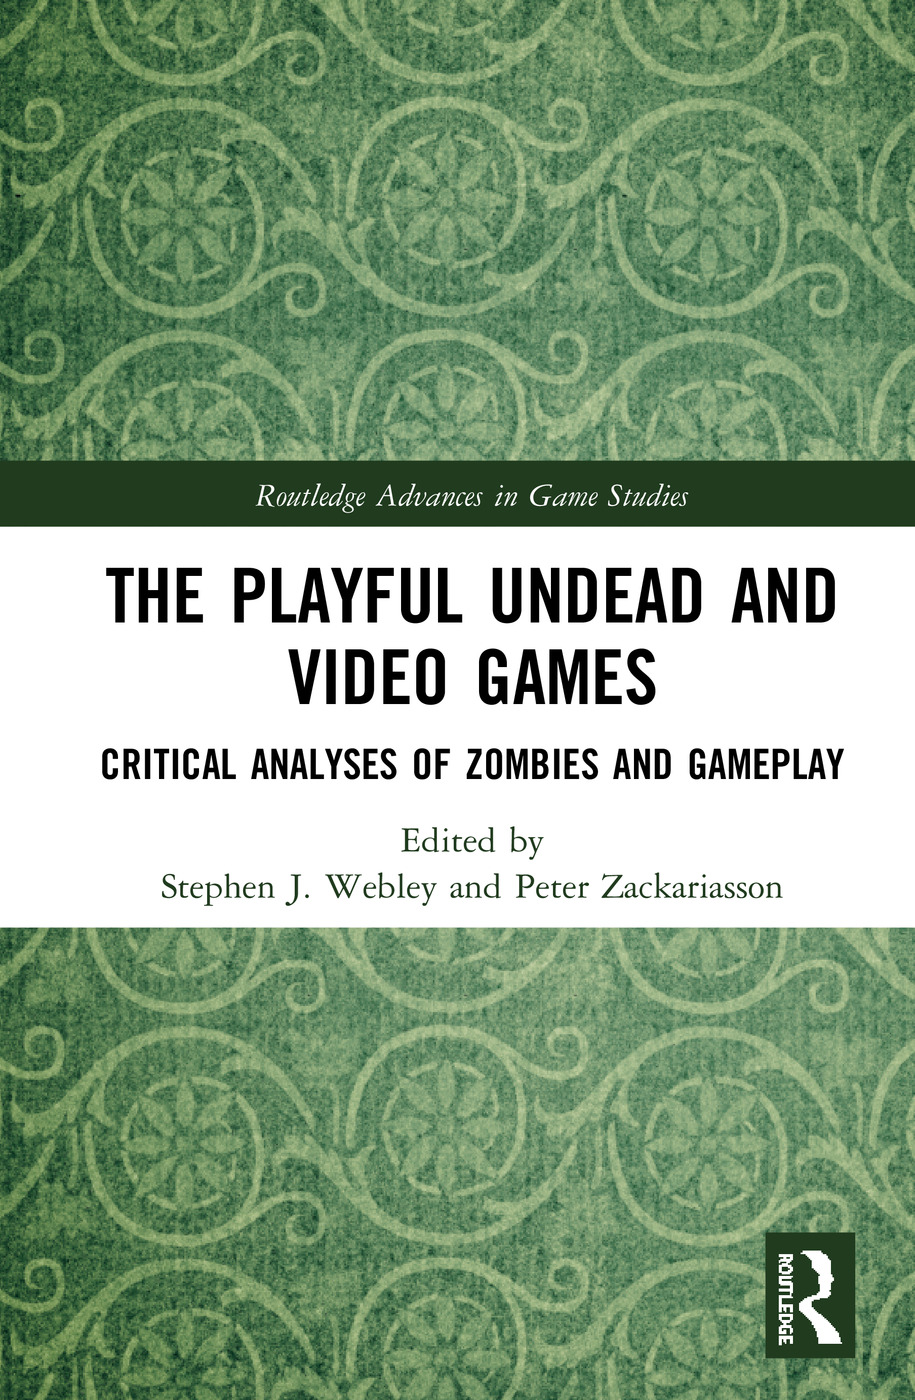 The Playful Undead and Video Games: Critical Analyses of Zombies and Gameplay book cover